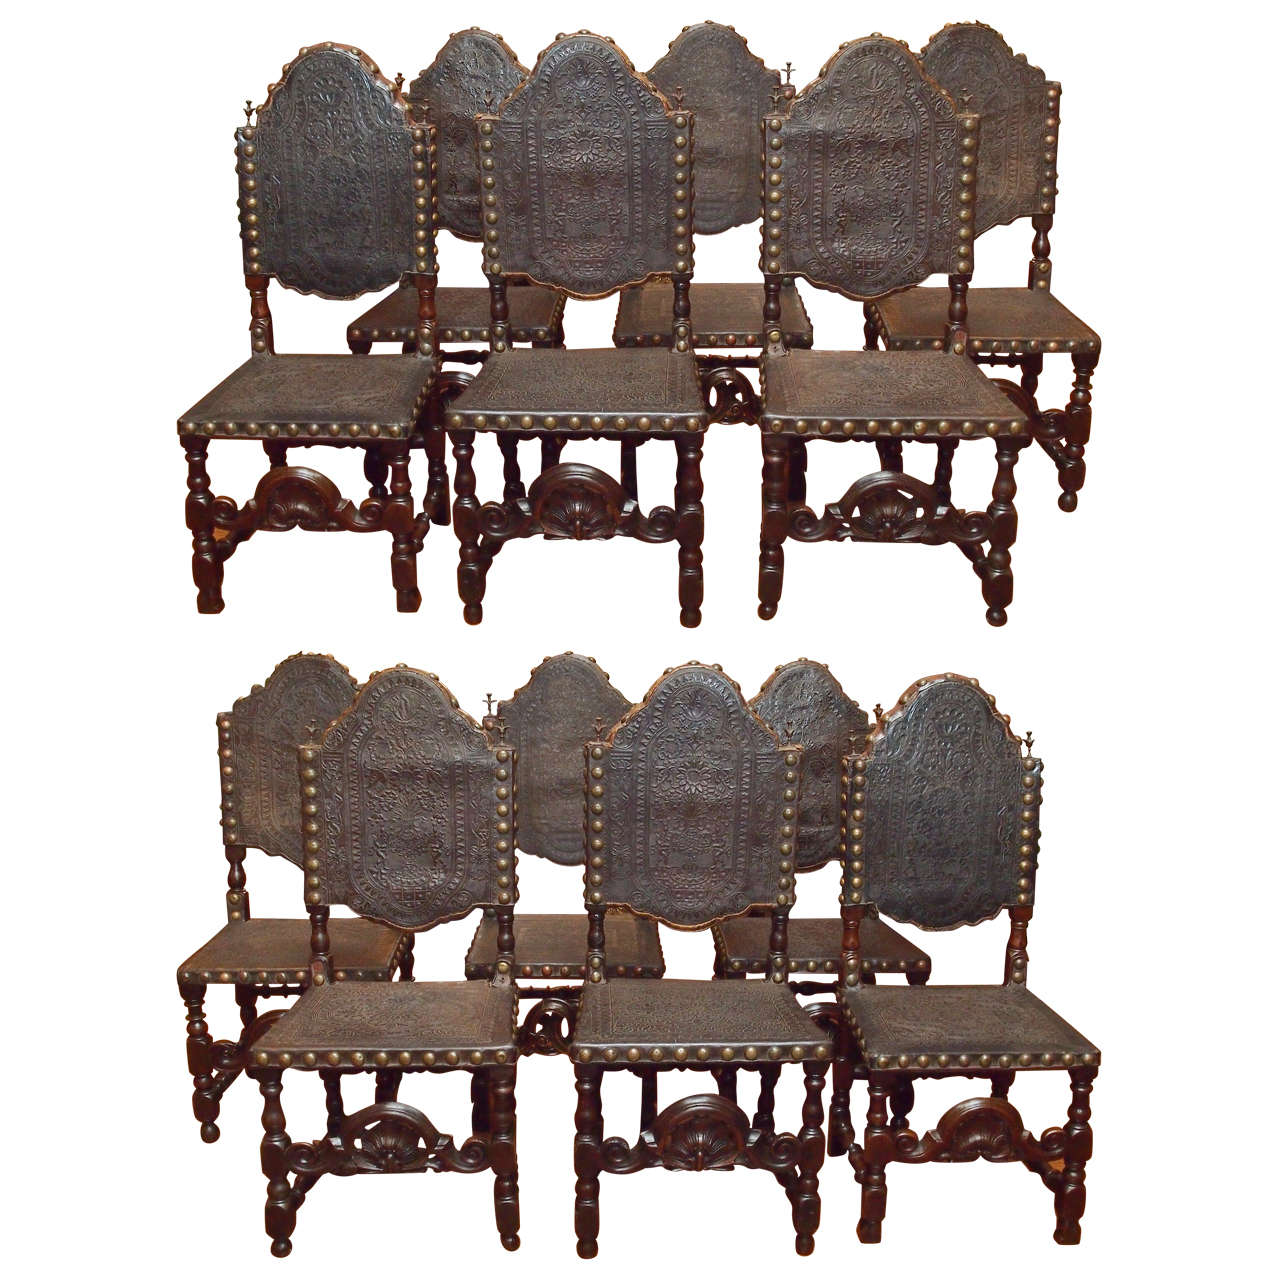 medieval dining chairs tommy bahama cooler chair x jpg